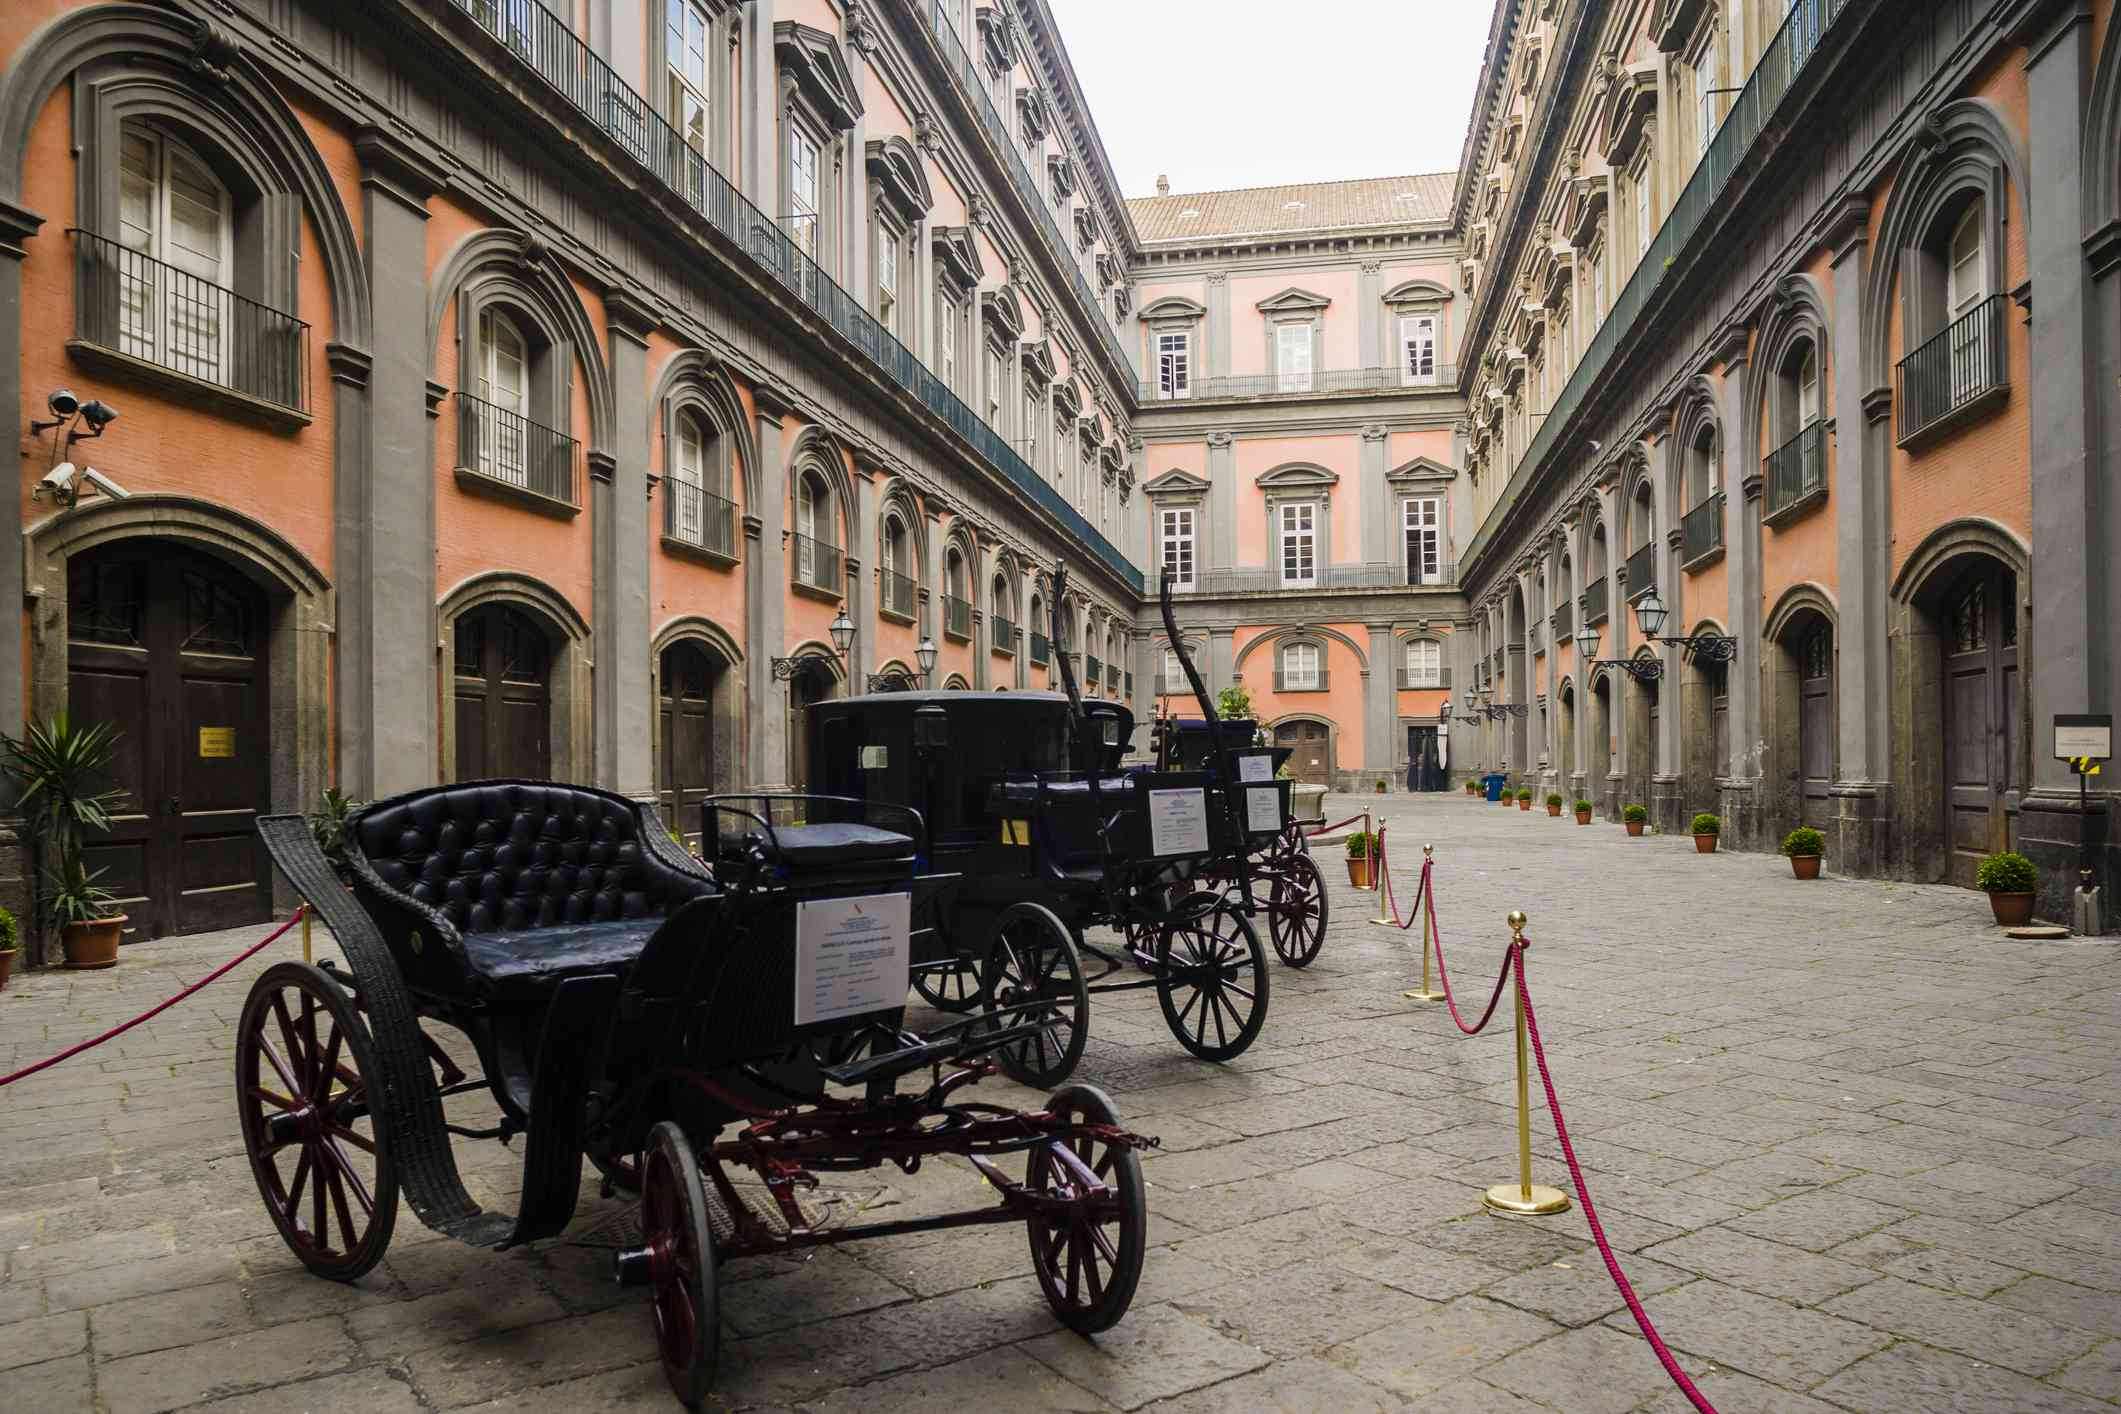 Antique coaches in a courtyard of the Palazzo Reale